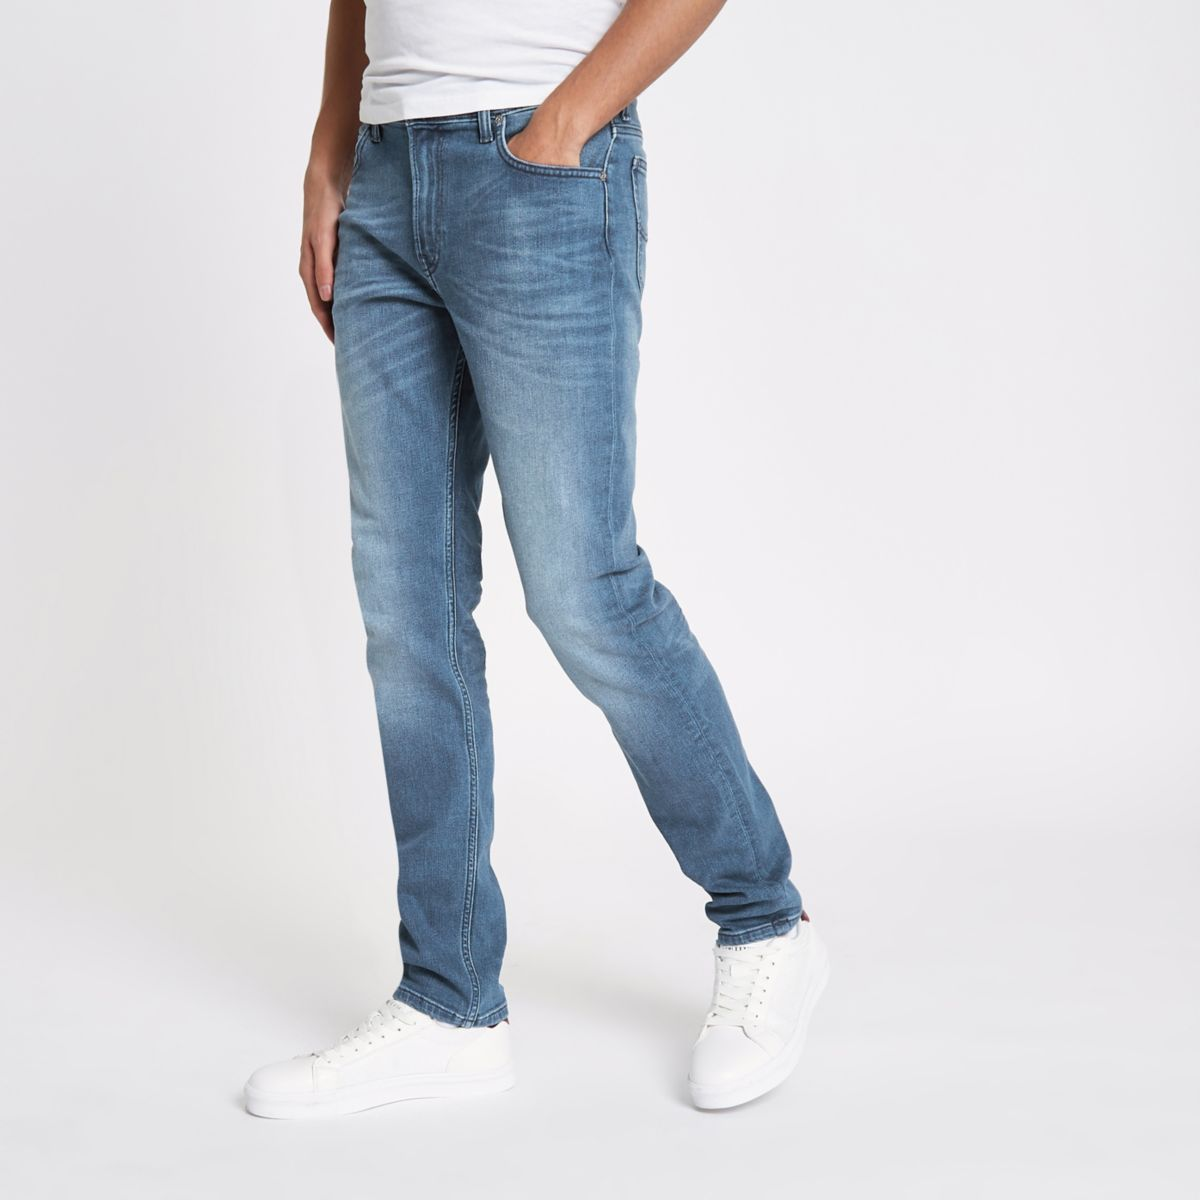 Lee – Rider – Blaue Slim Fit Jeans